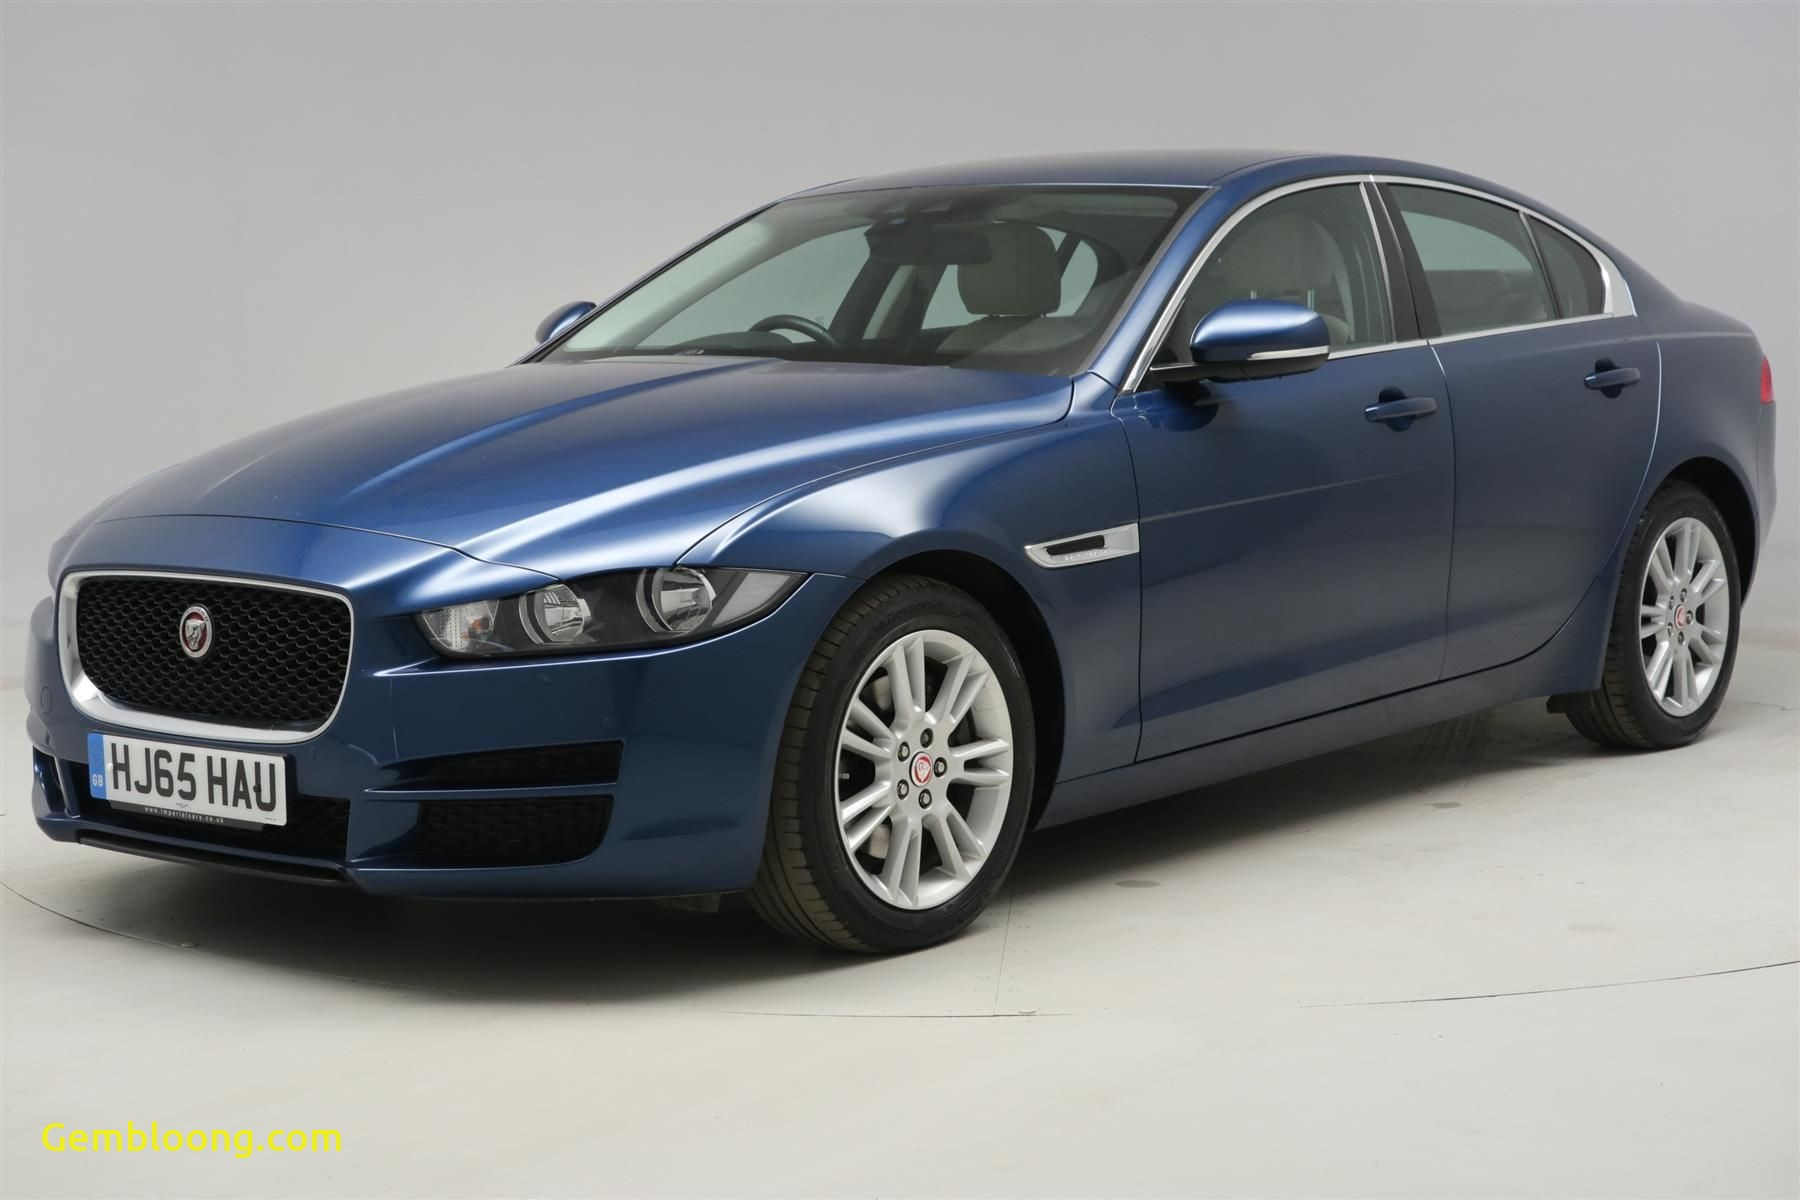 Cars for Sale Near Me by Owner Inspirational Used 2016 Jaguar Xe 2 0d [180] Prestige 4dr Auto Active